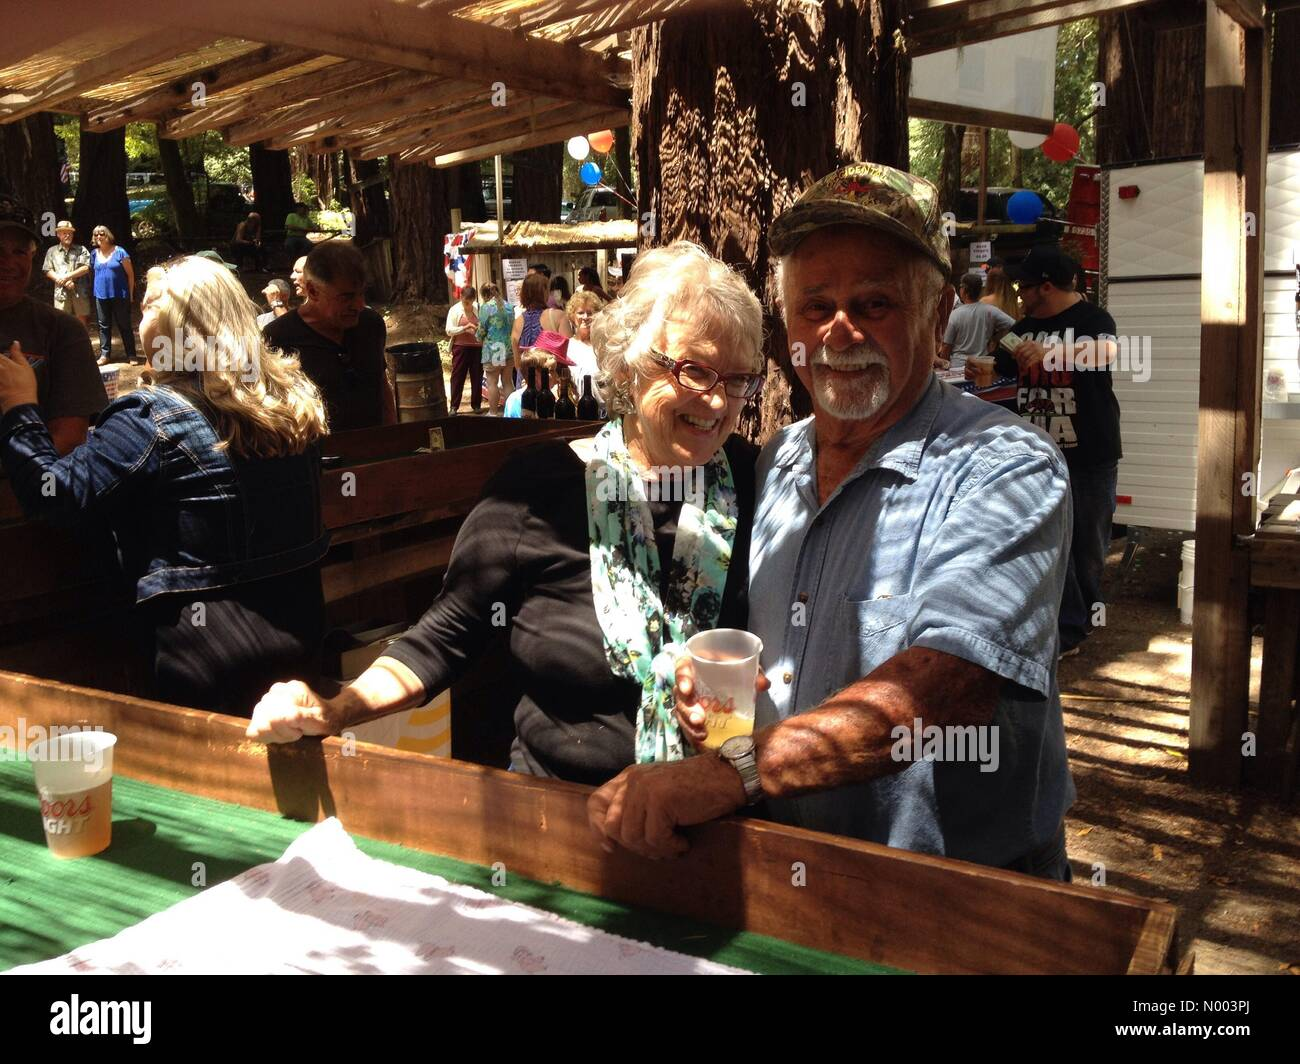 California, USA. 19th July, 2015. Two volunteers man the dice table at the Occidental Volunteer Fire Department - Stock Image